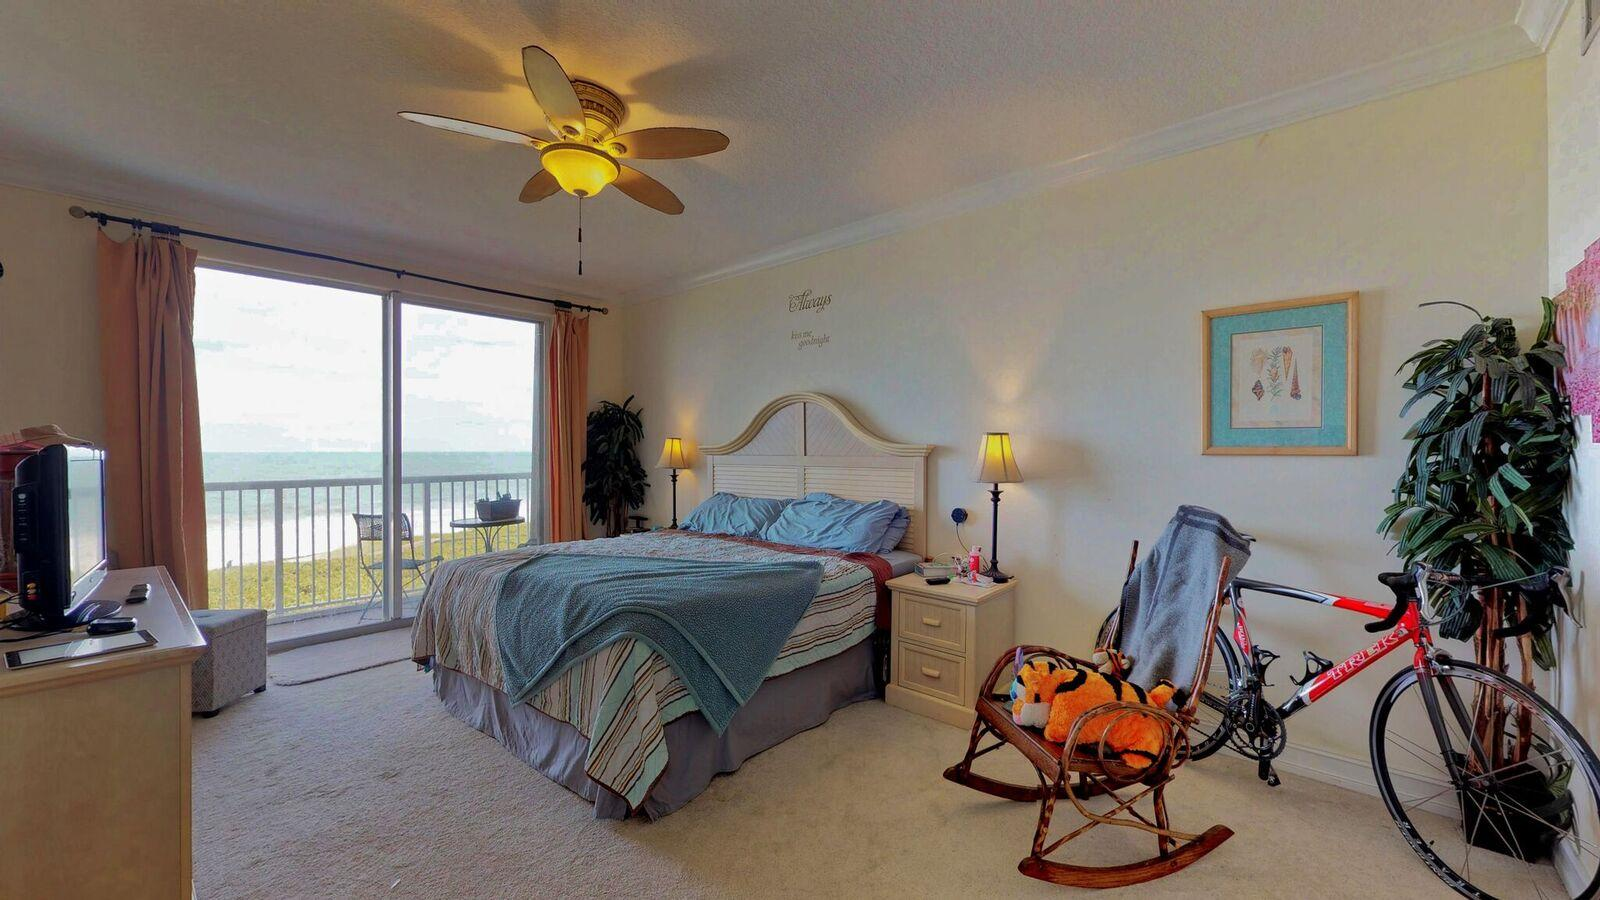 OCEANIQUE OCEANFRONT (OR 2752-1842) BLDG B UNIT 403 (OR 3126-791)